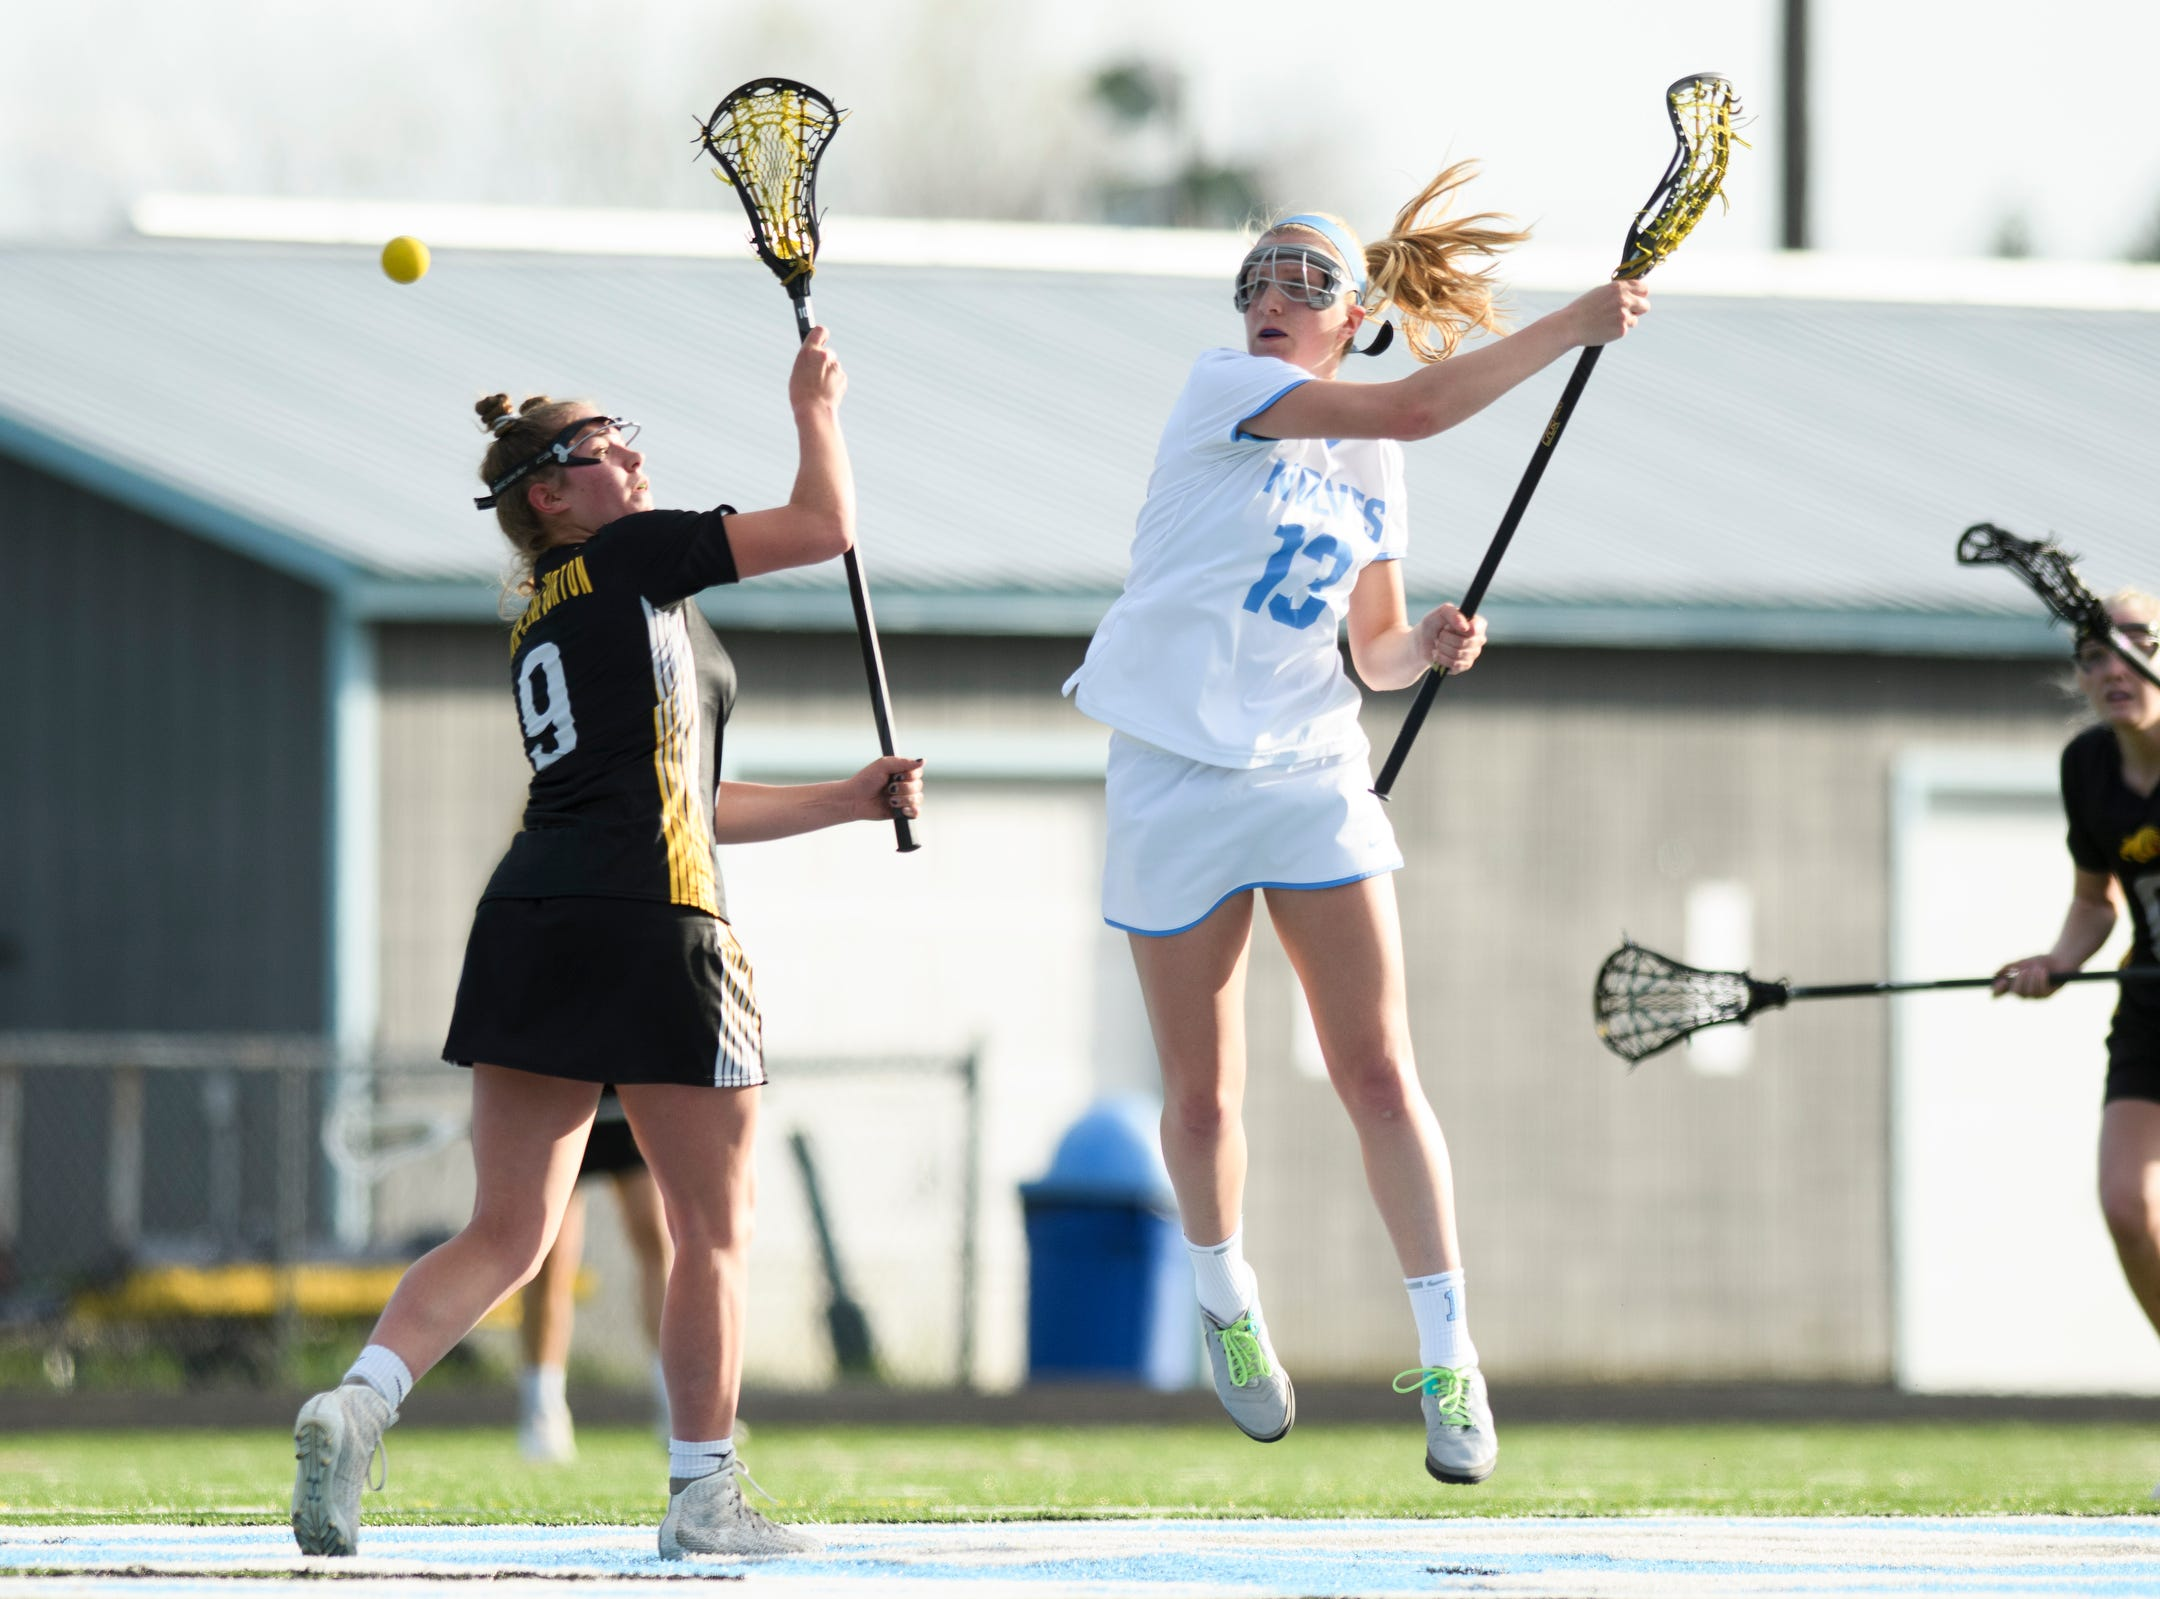 South Burlington's Caroline Desautels (13) and Burr and Burton's Julia Fillion (9) battle for the tip off during the high school girls lacrosse game between Burr and Burton Bulldogs and the South Burlington Wolves at Munson Field on Monday afternoon May 6, 2019 in South Burlington, Vermont.